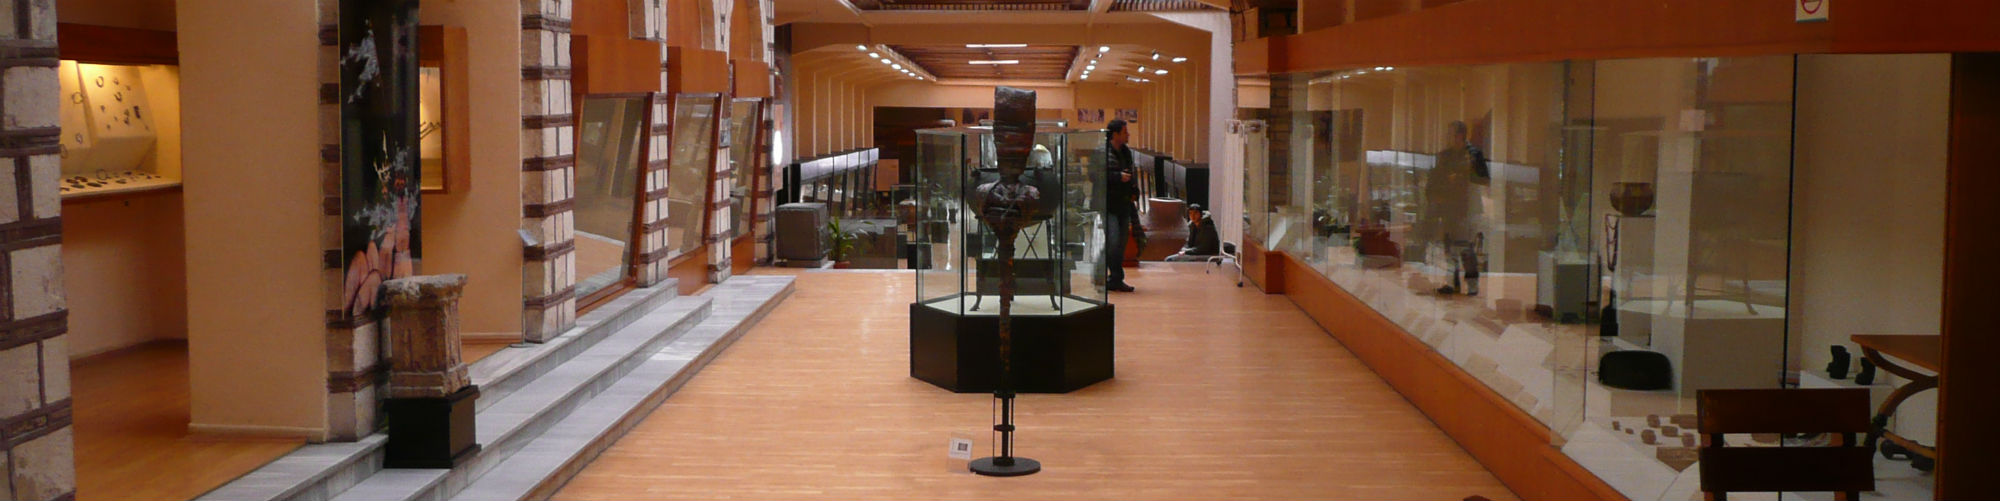 Museum of Anatolian Civilizations, Ankara